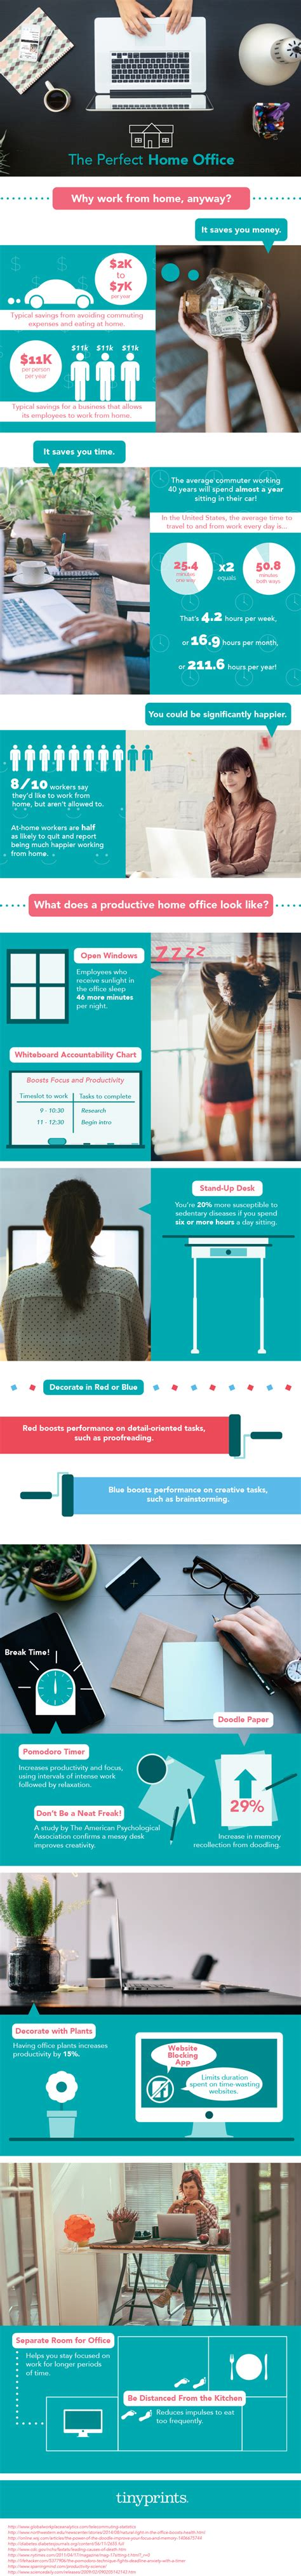 couch manager why work from home the perfect home office infographic